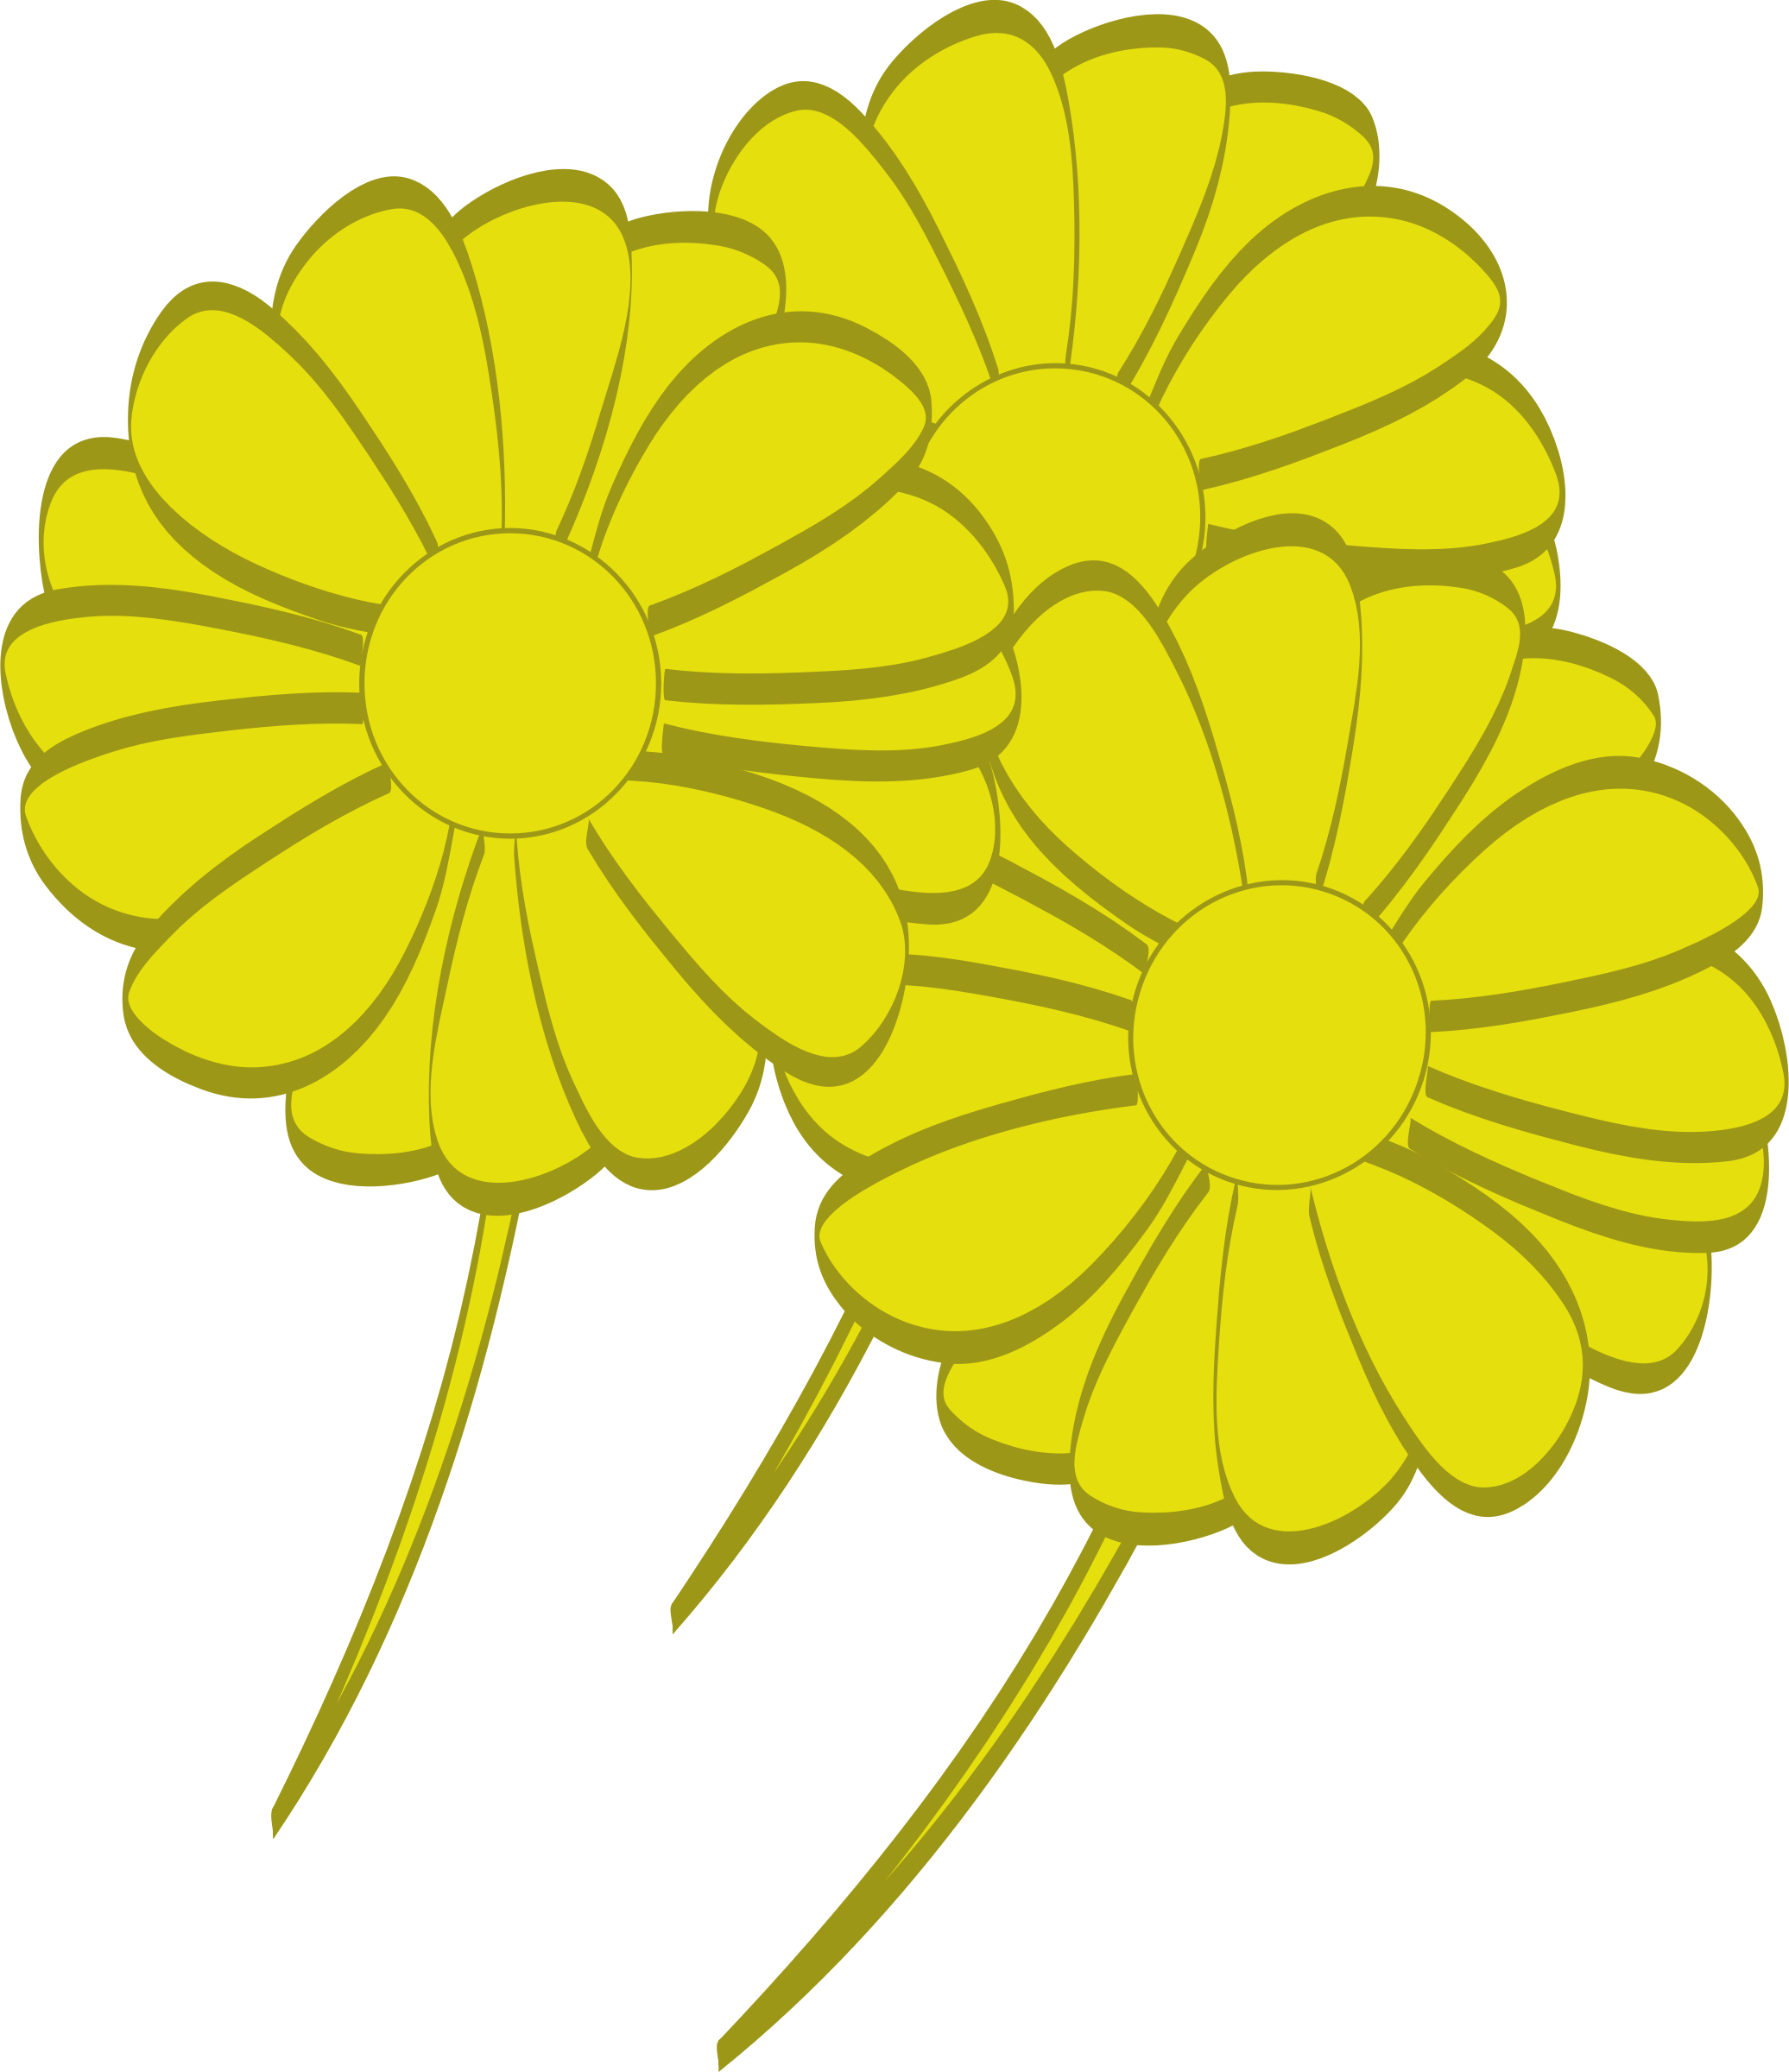 yellow flowers by benz